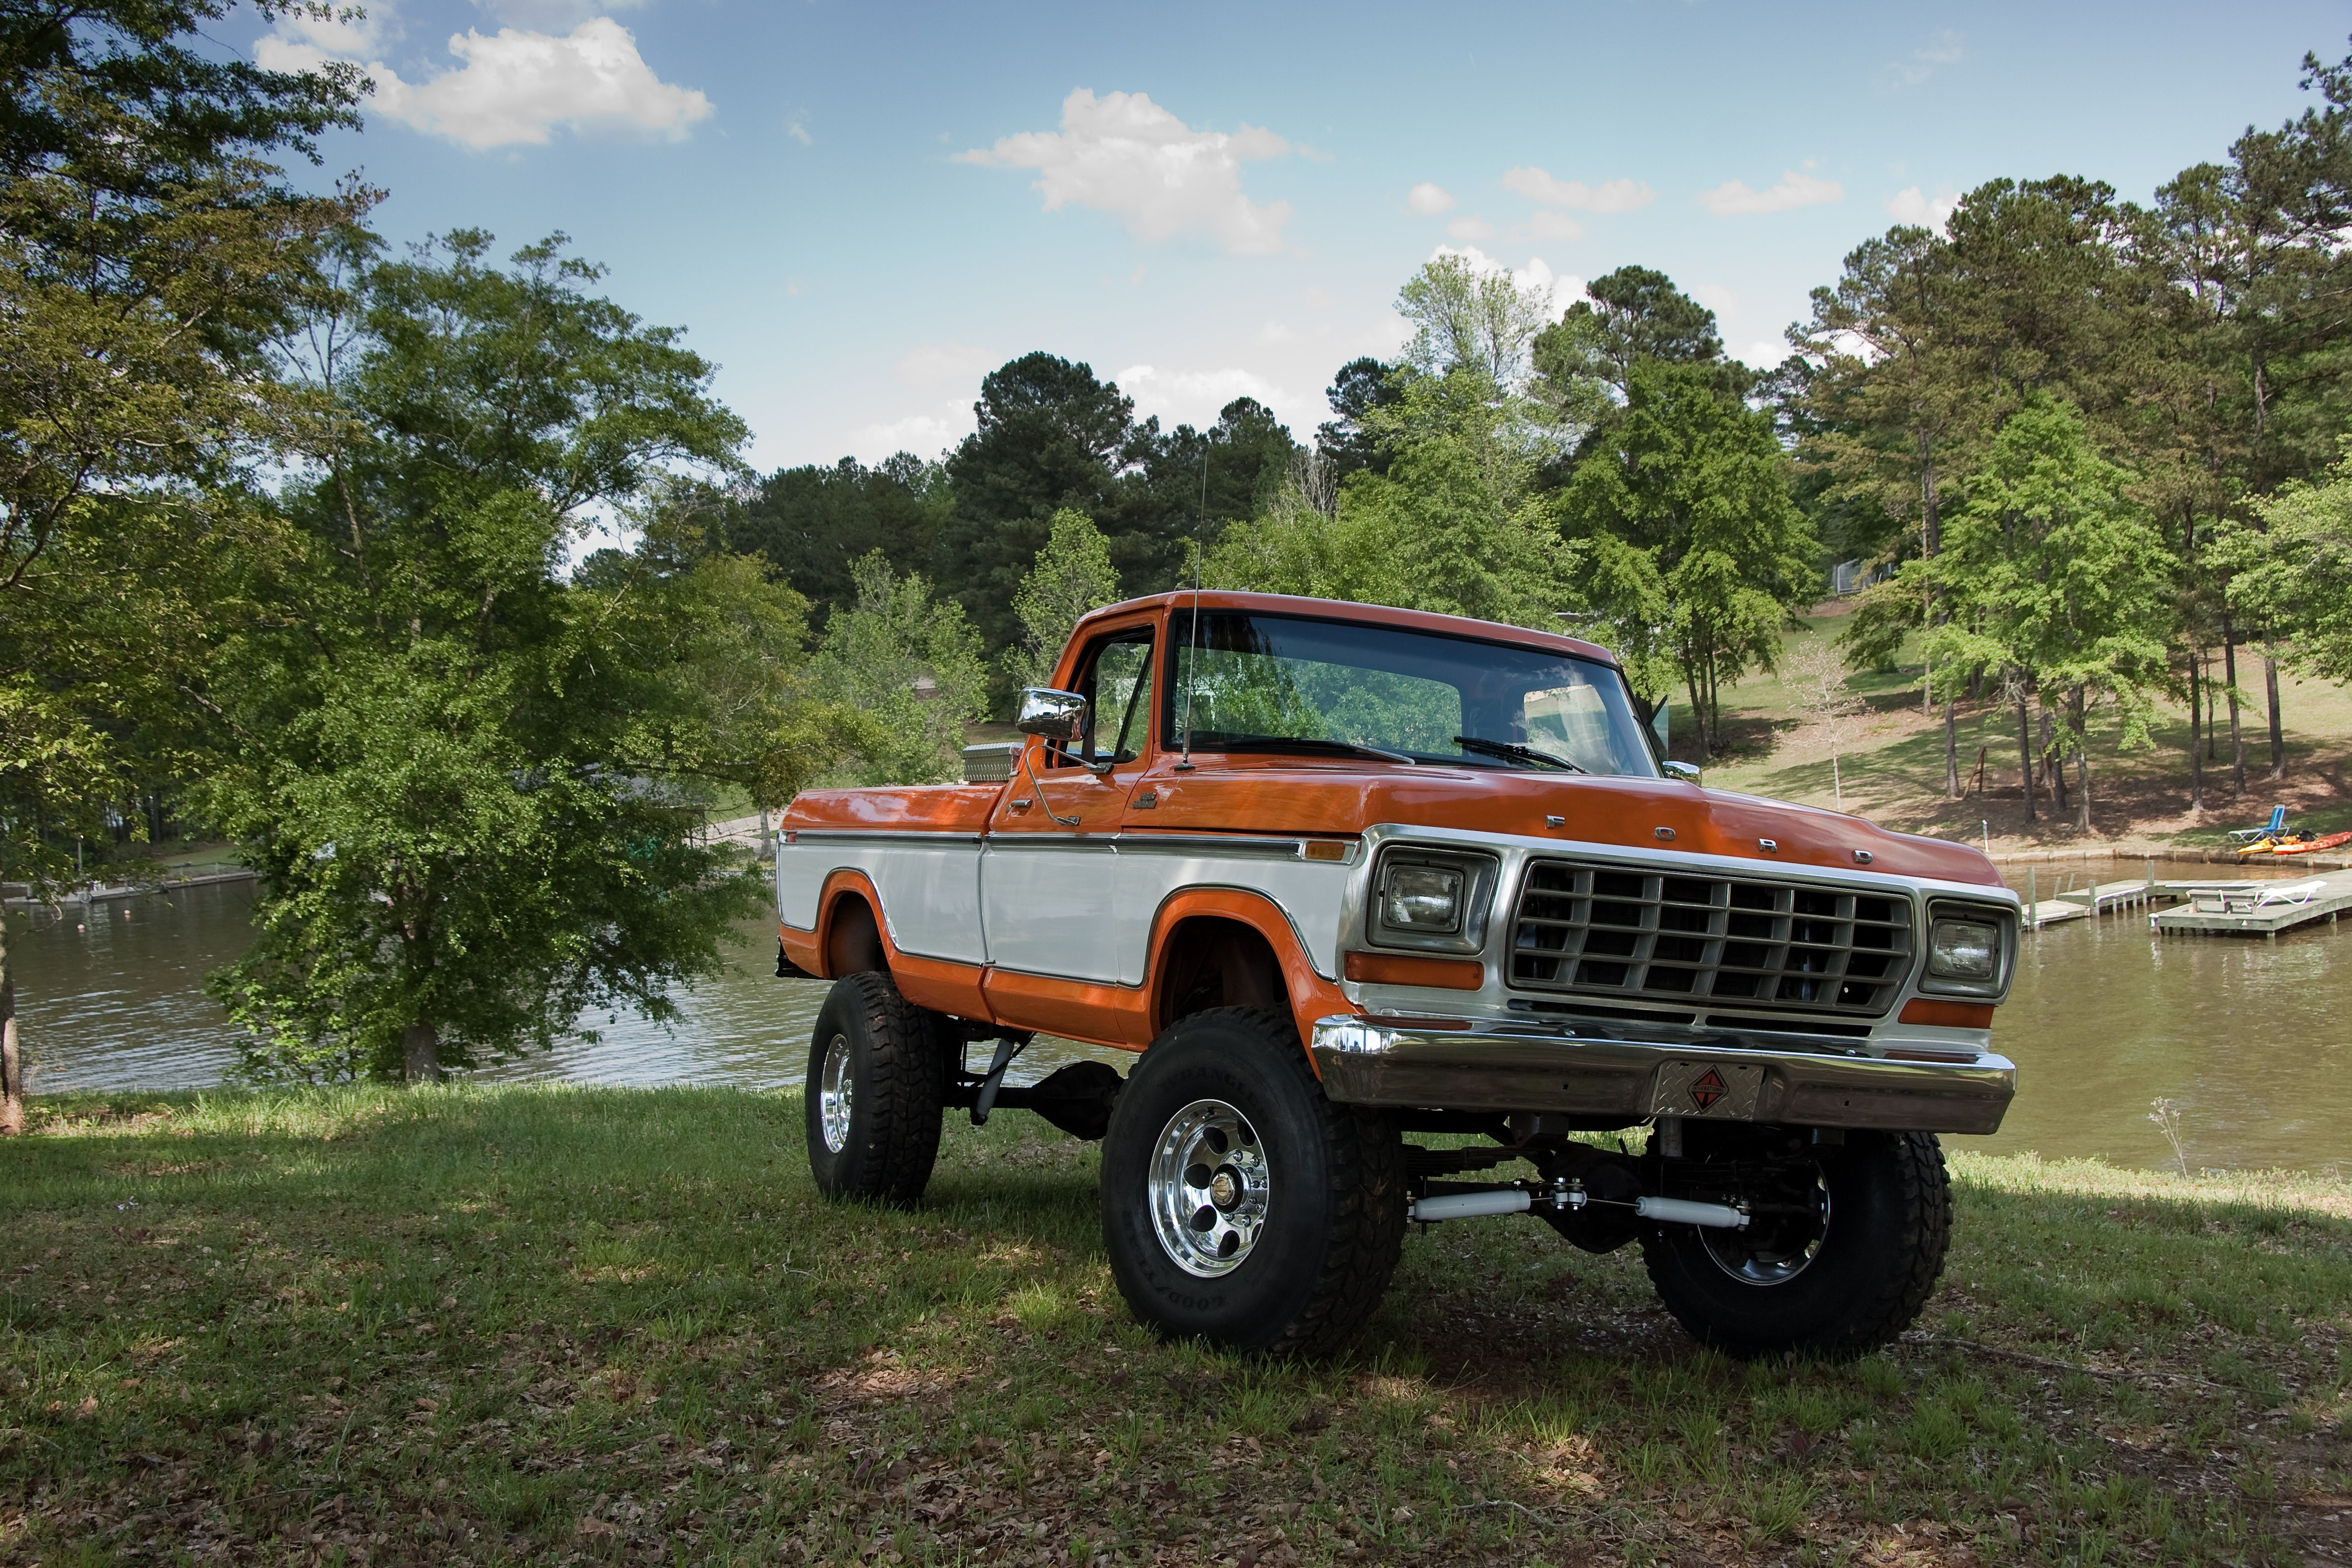 medium resolution of vintage jacked lifted orange white two tone lifted truck